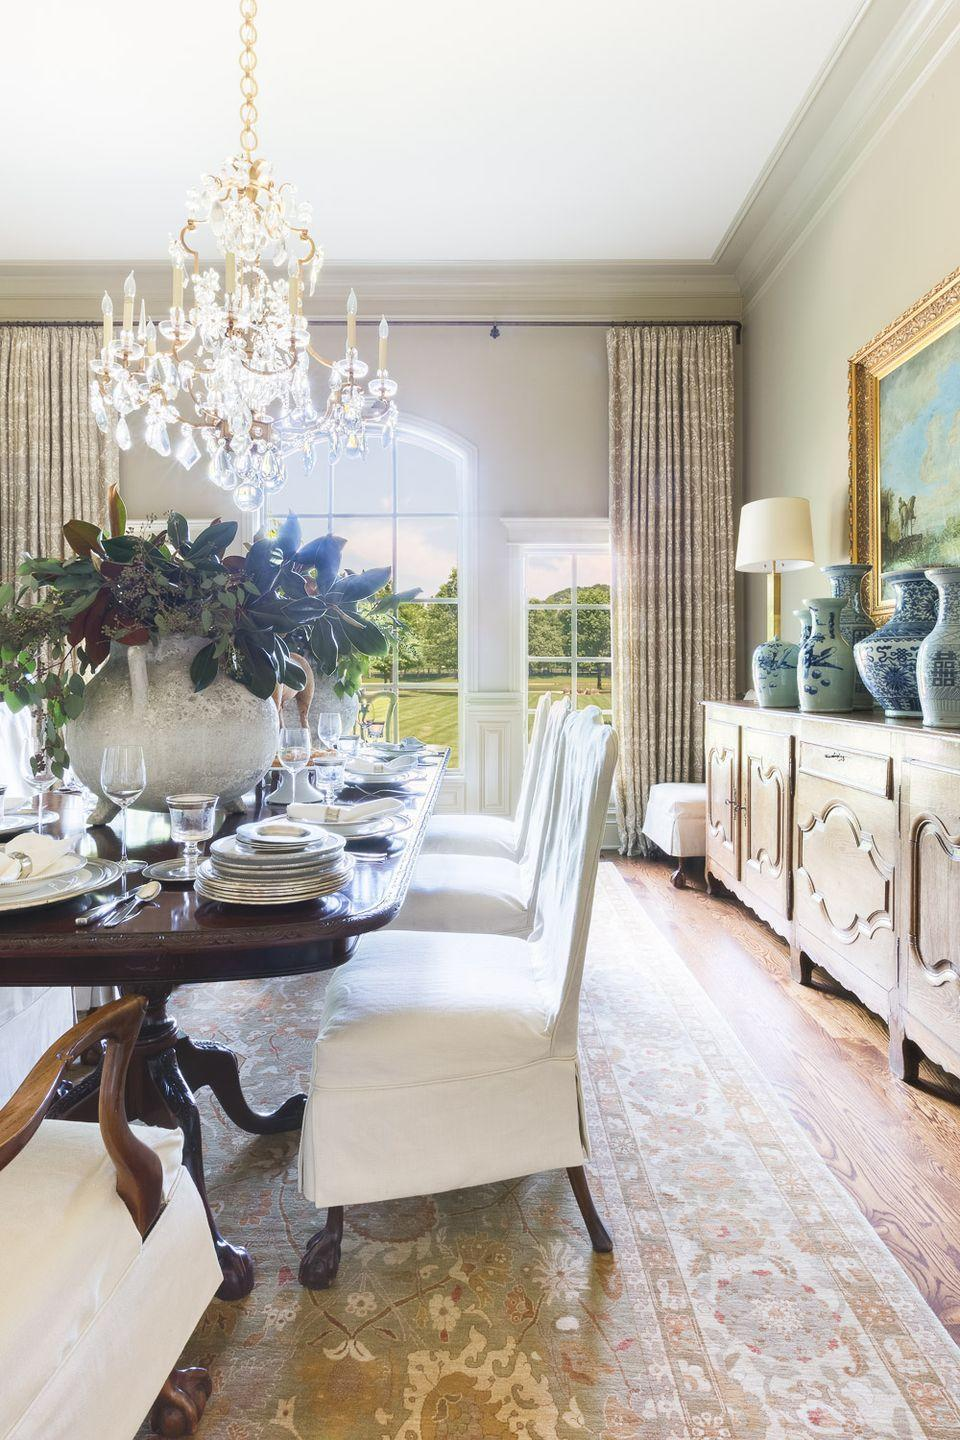 """<p>""""Simple changes like placing casual (yet pretty!) slipcovers over the English antique chippendale chairs change the feel of the dining room,"""" says Robin Rains of <a href=""""https://robinrains.com/"""" rel=""""nofollow noopener"""" target=""""_blank"""" data-ylk=""""slk:Robin Rains Interior Design"""" class=""""link rapid-noclick-resp"""">Robin Rains Interior Design</a>. </p>"""